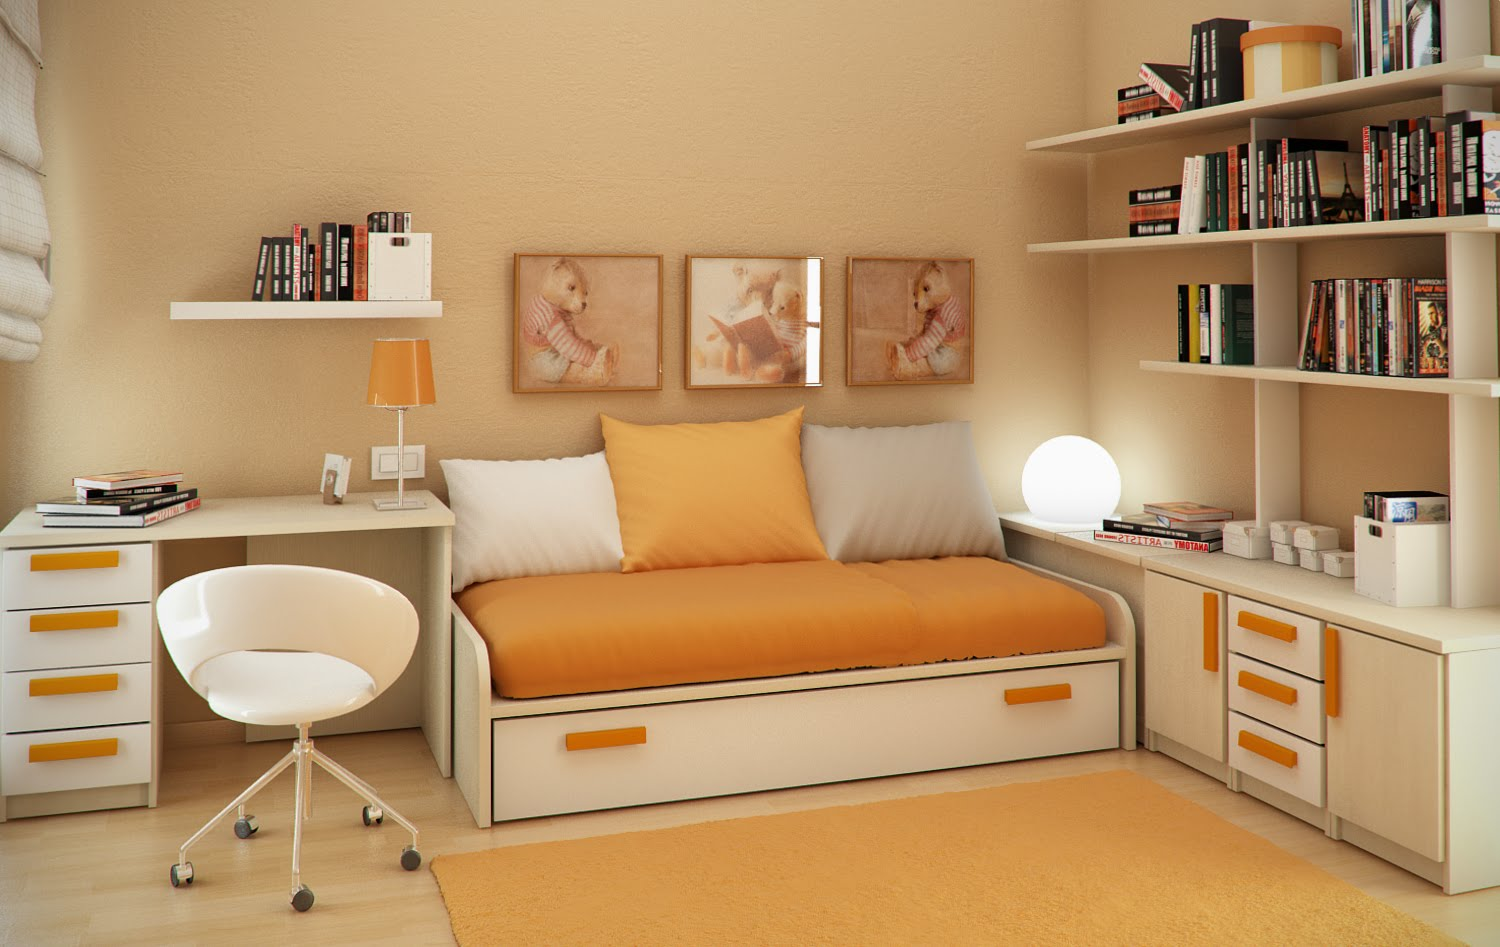 small floorspace kids rooms rh home designing com Small Living Room Furniture Layout Small Family Room Furniture